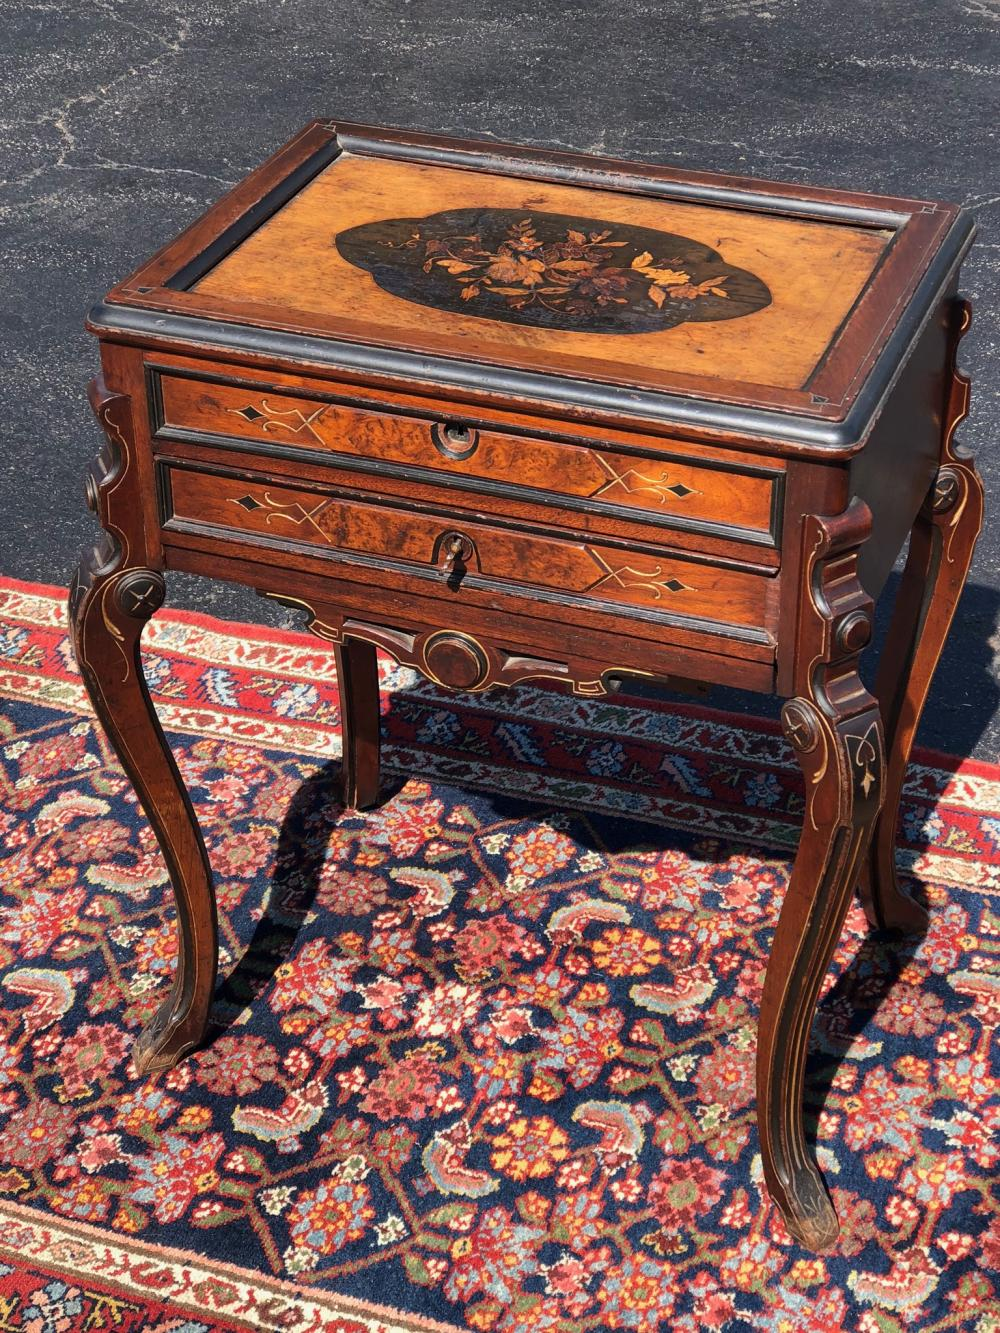 Renaissance Revival Marquetry Inlaid Sewing Stand